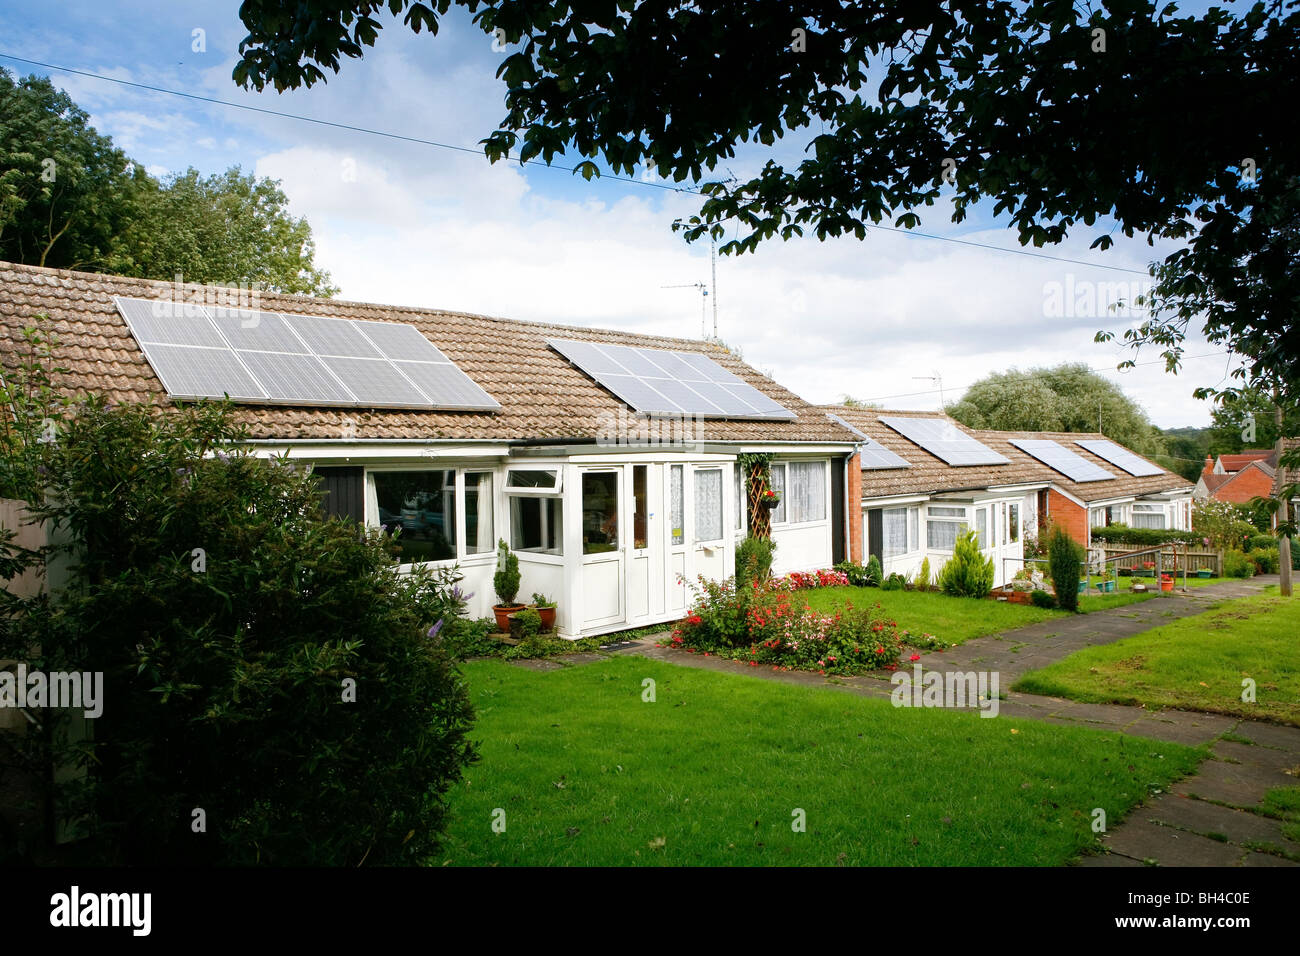 Solar panels on a bungalow - Stock Image